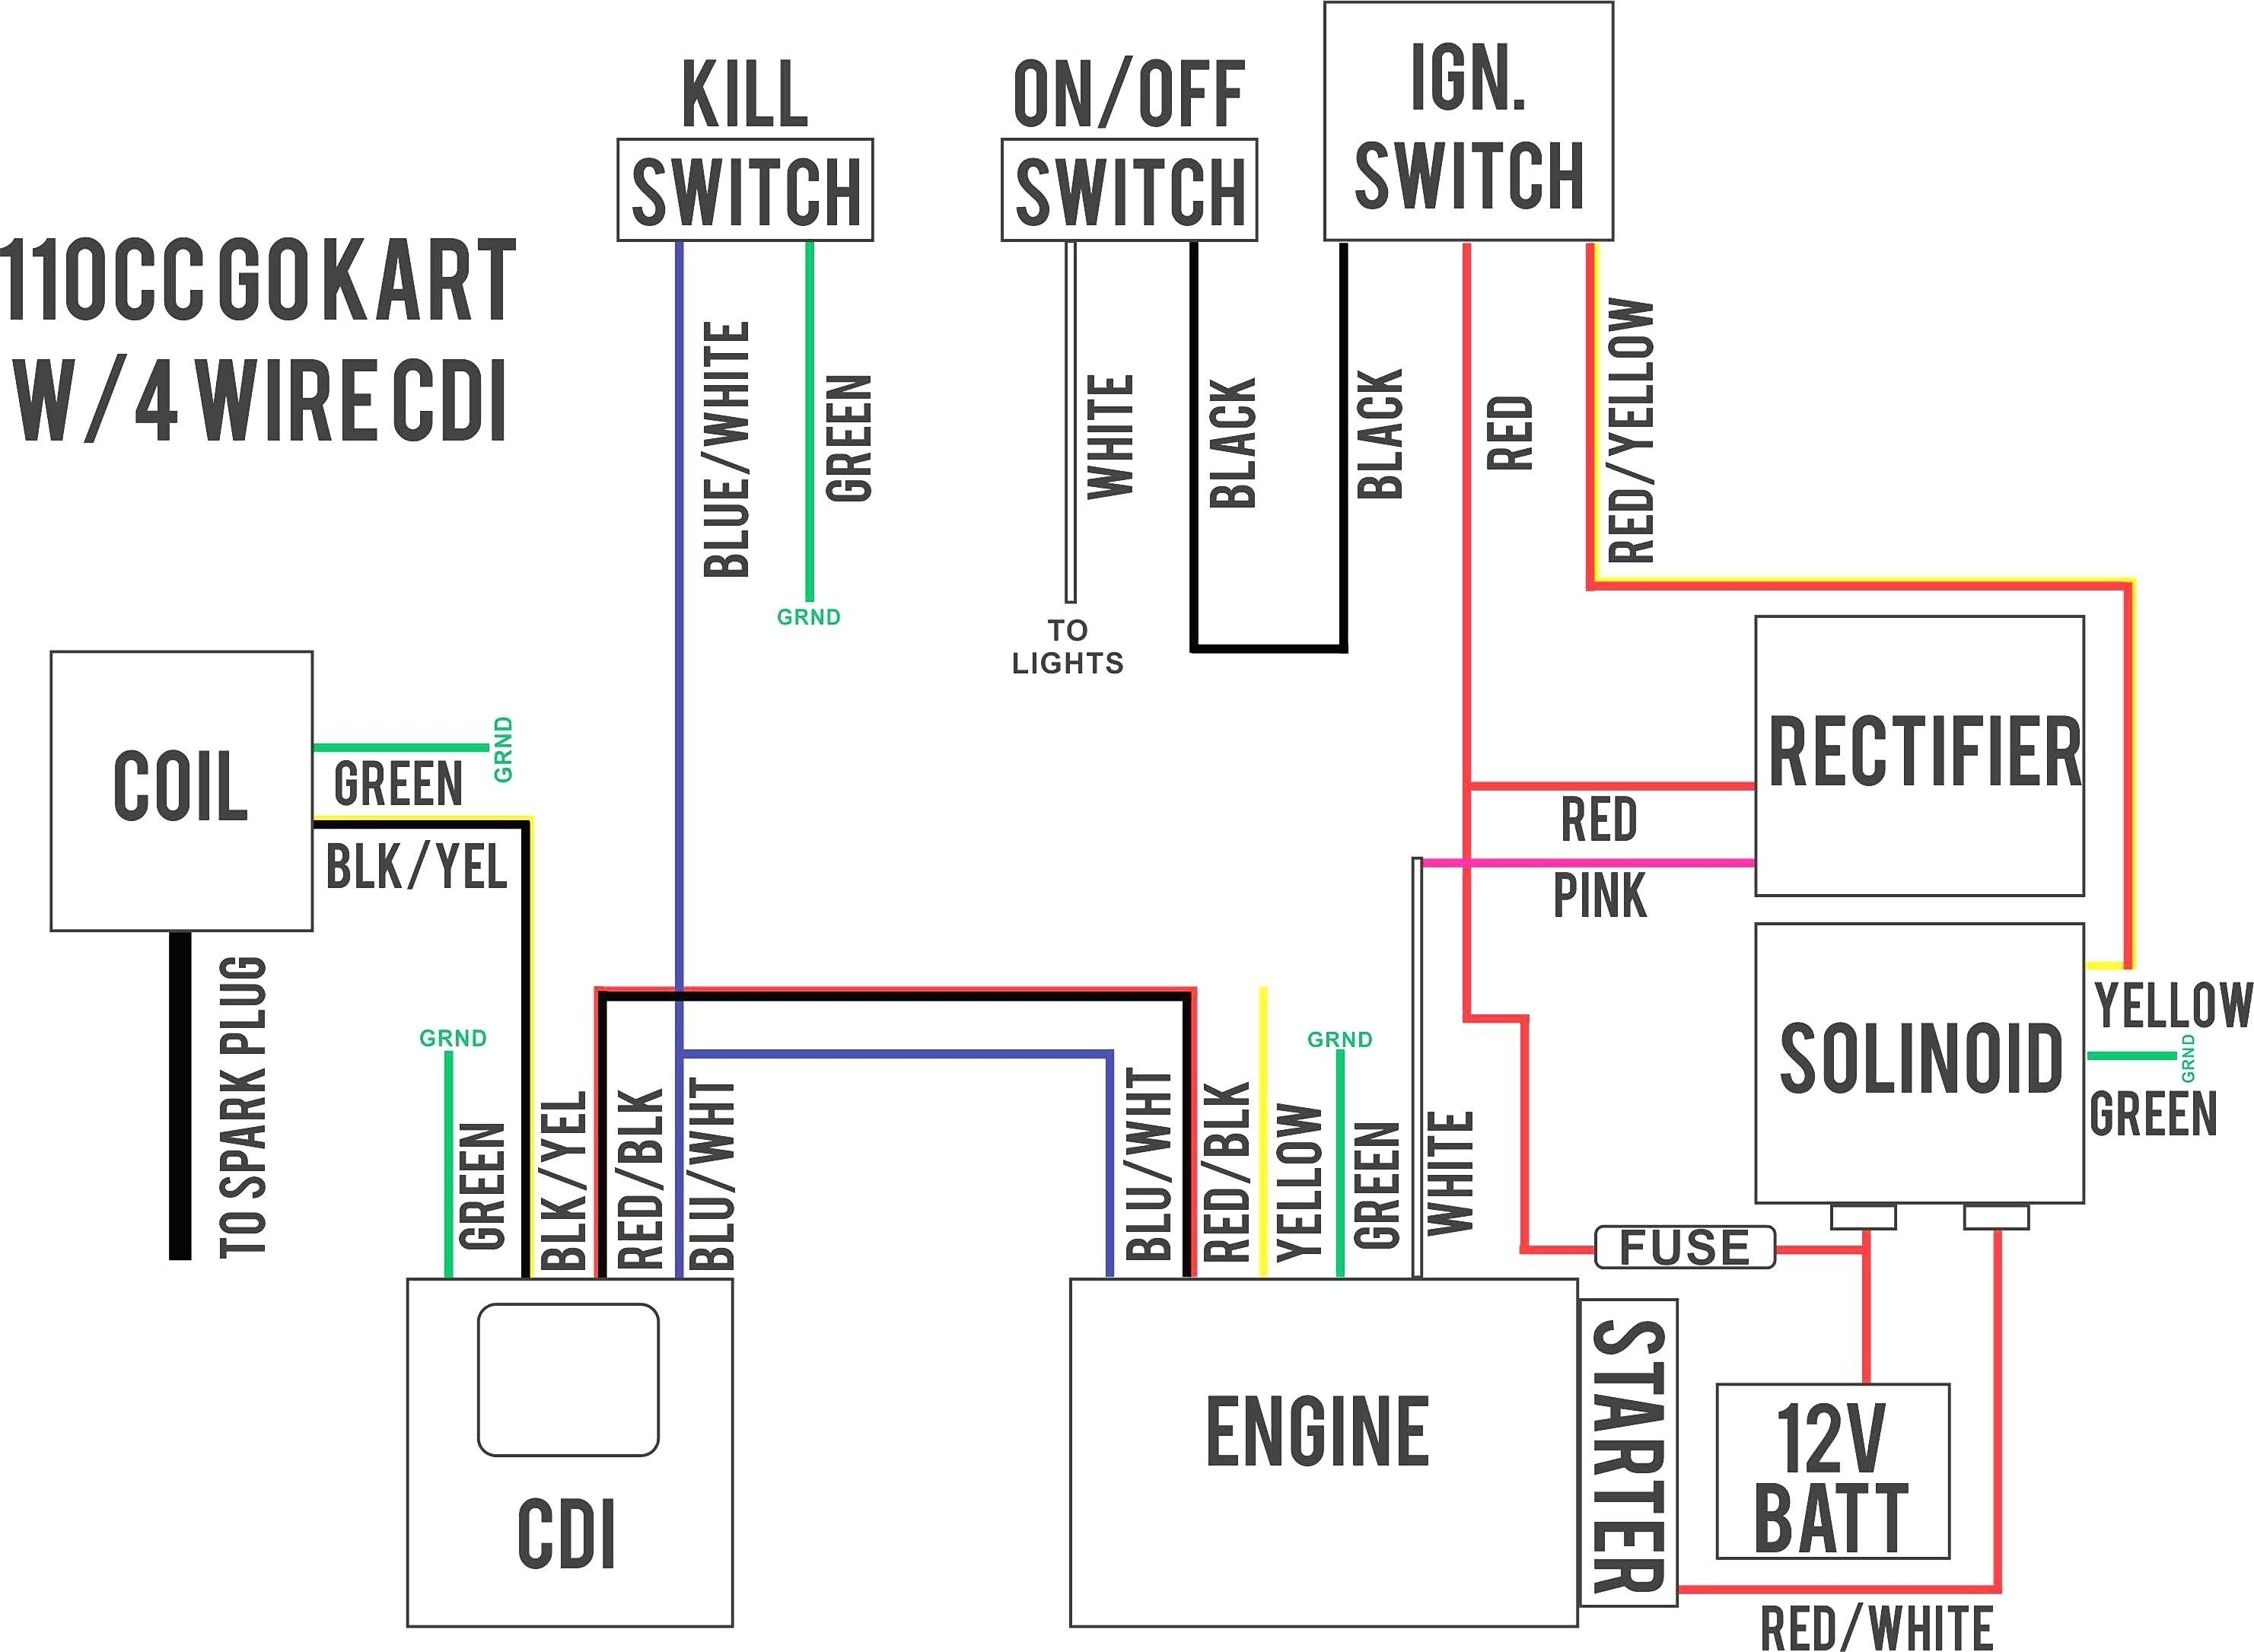 Which Post is On Harley Coil Electrical Wiring Diagram Motorcycle with Images Of Which Post is On Harley Coil